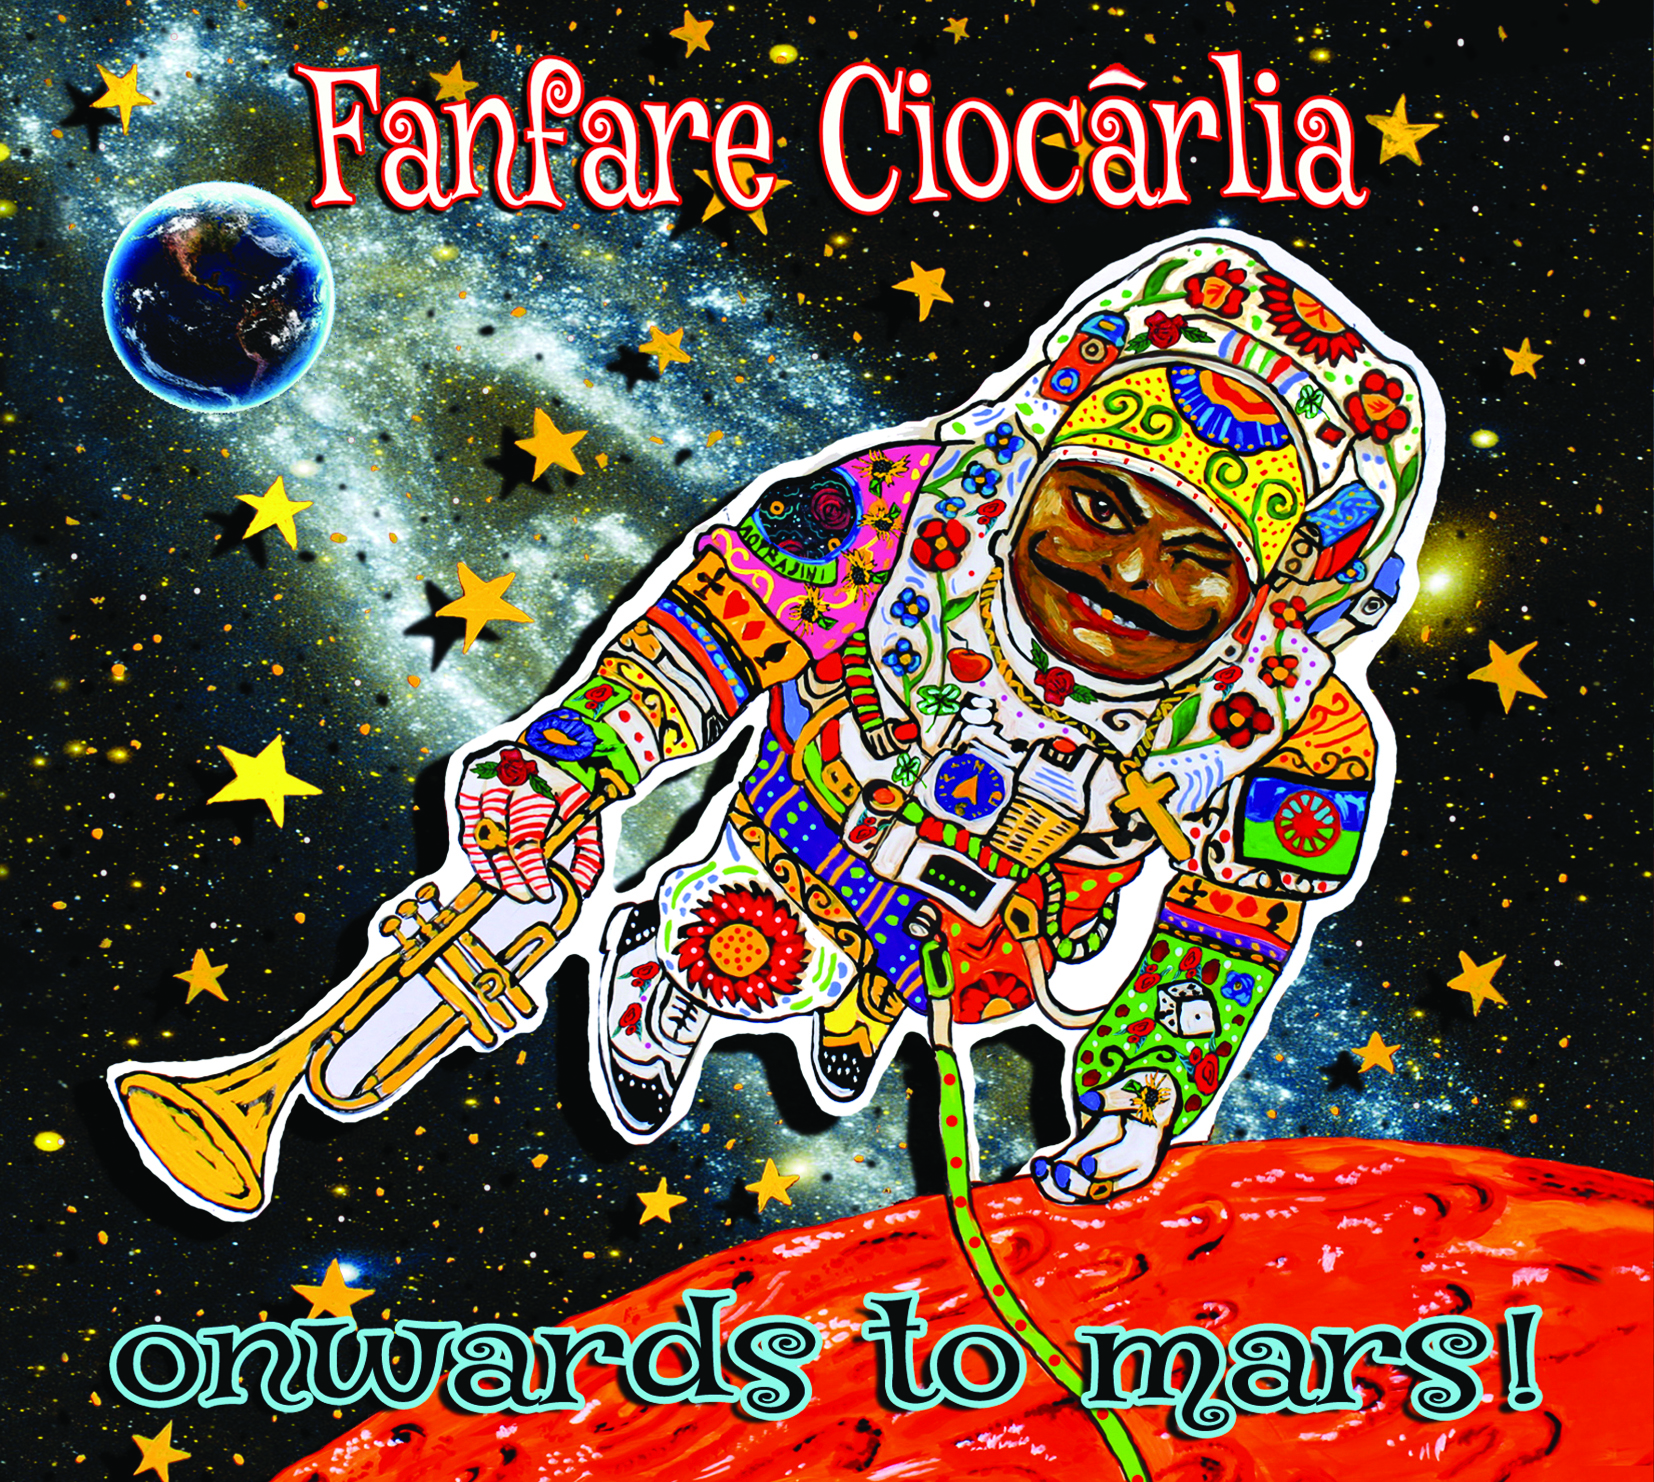 Fanfare Ciocarlia - Onwards to Mars! Cover